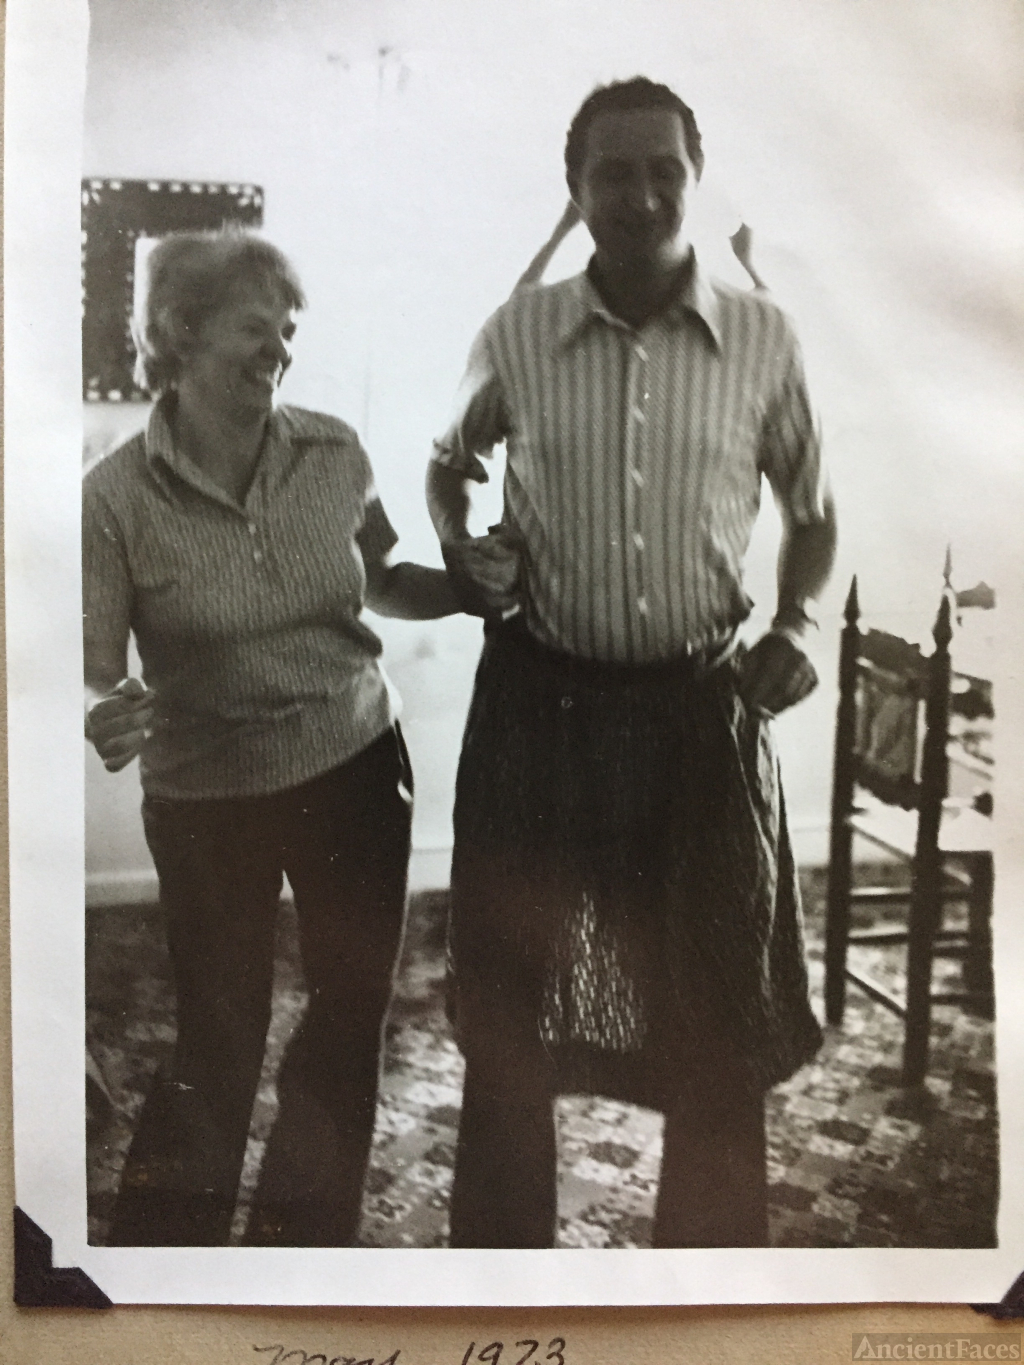 Remo and Barbara Mion